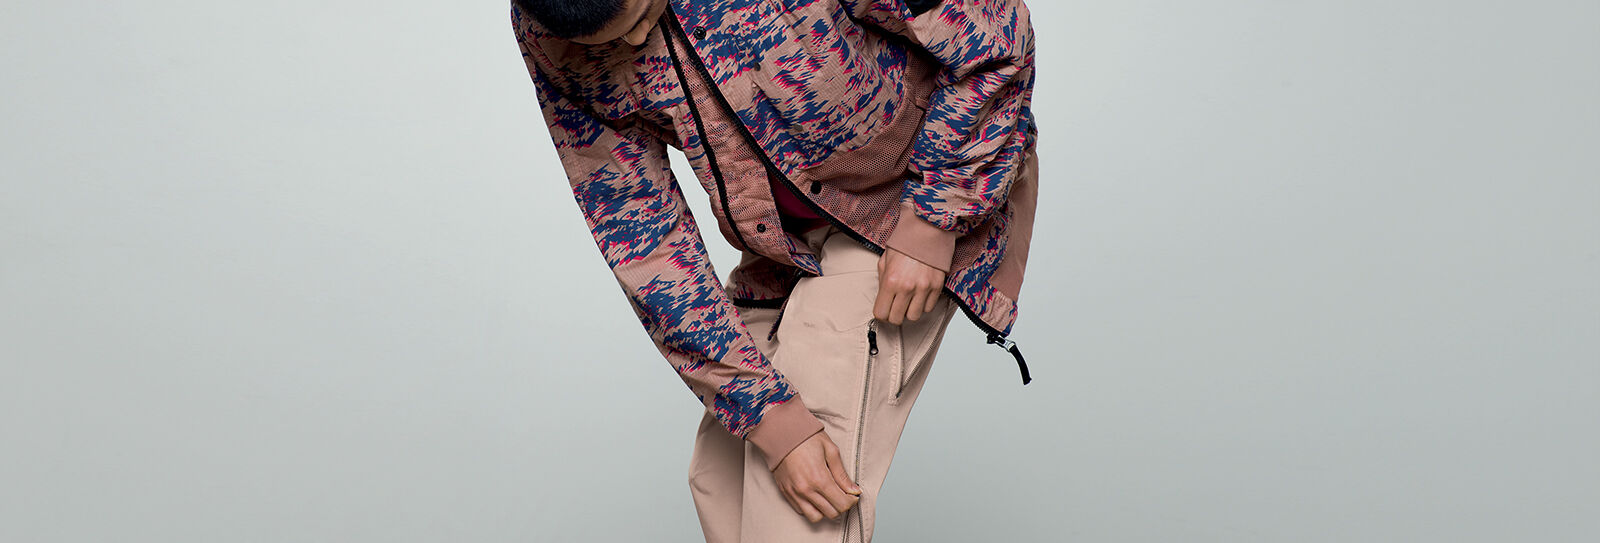 Model wearing a khaki, blue and red print jacket with black zipper fastening and beige pants with a two ways zipper on the left leg.